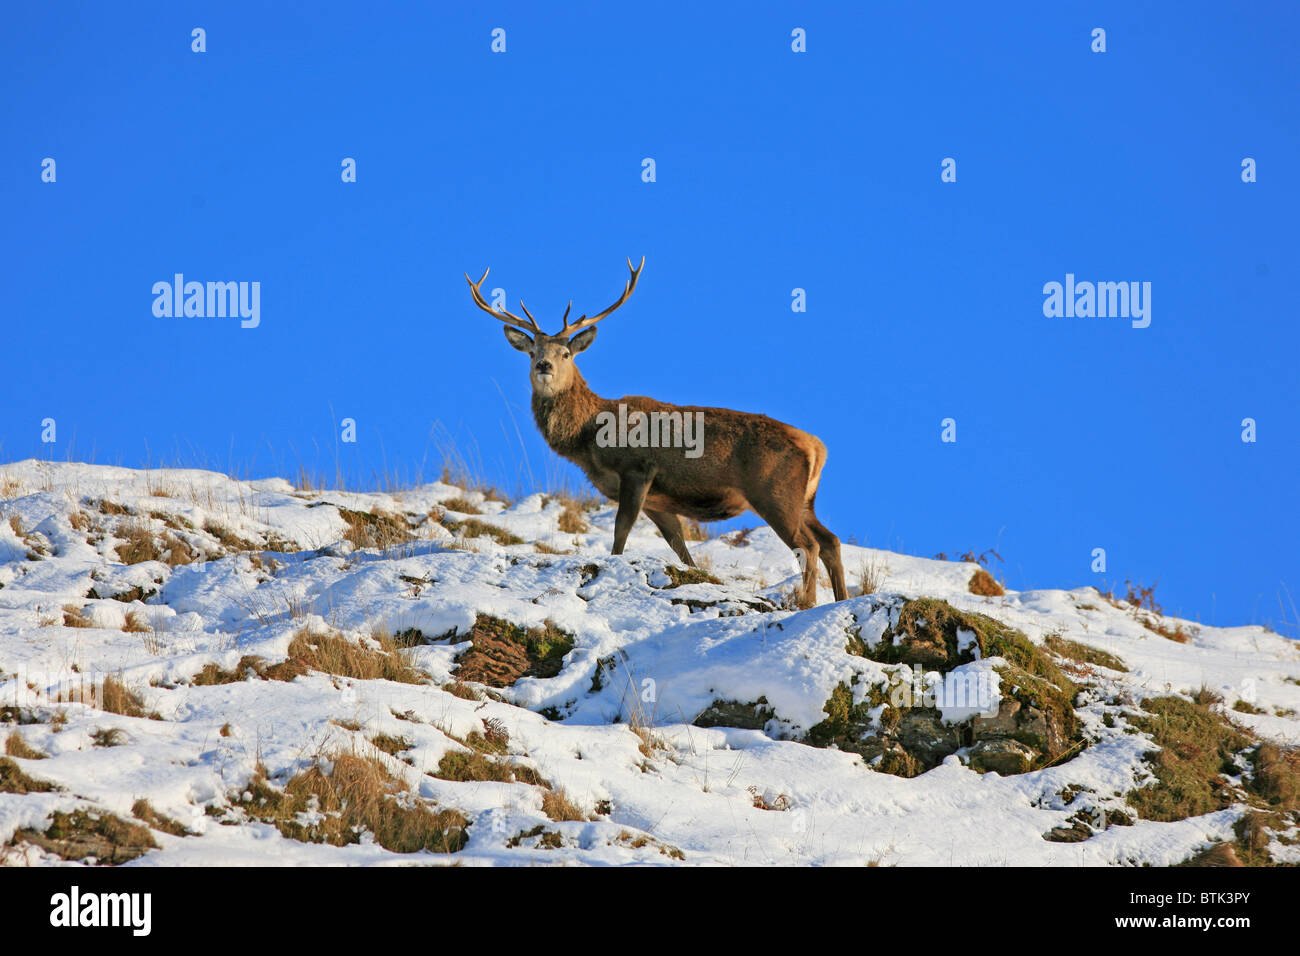 Red Deer Stag in snow - Stock Image